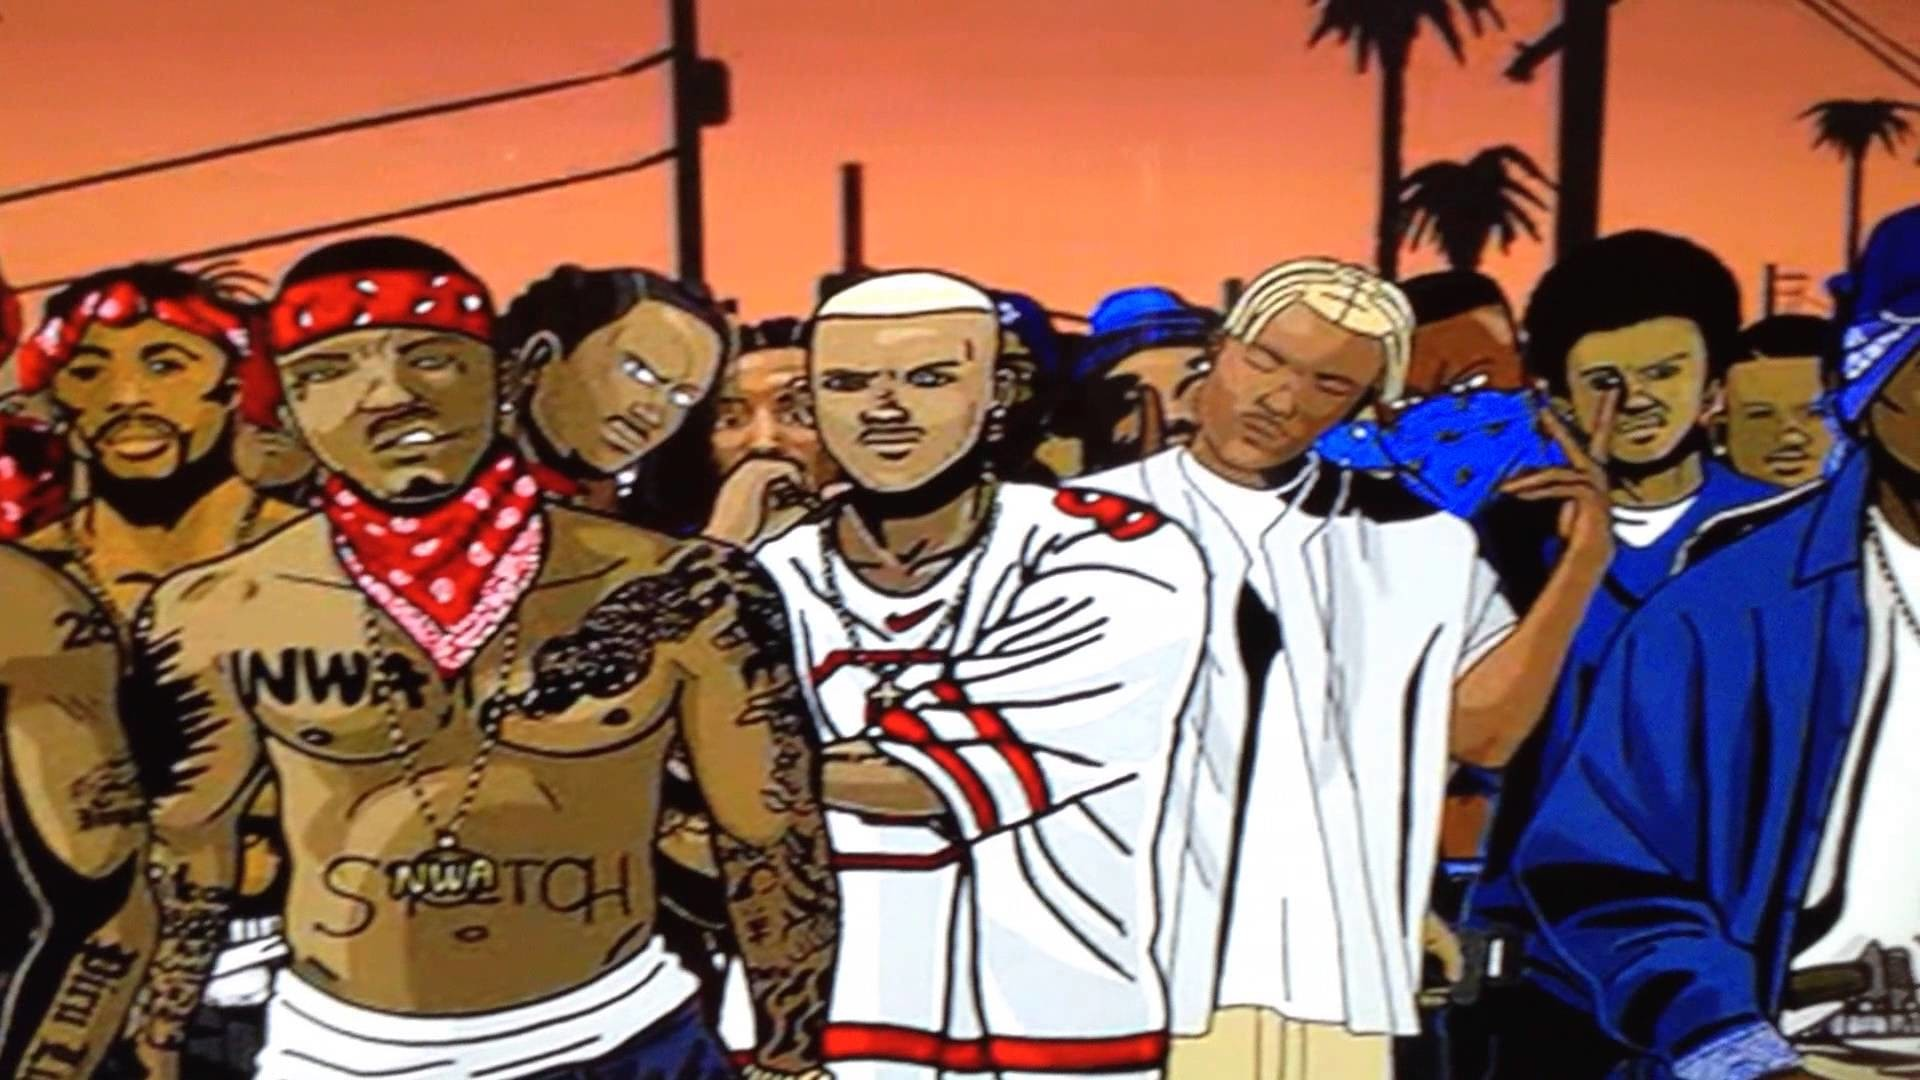 1920x1080 100 bloods and crips the game